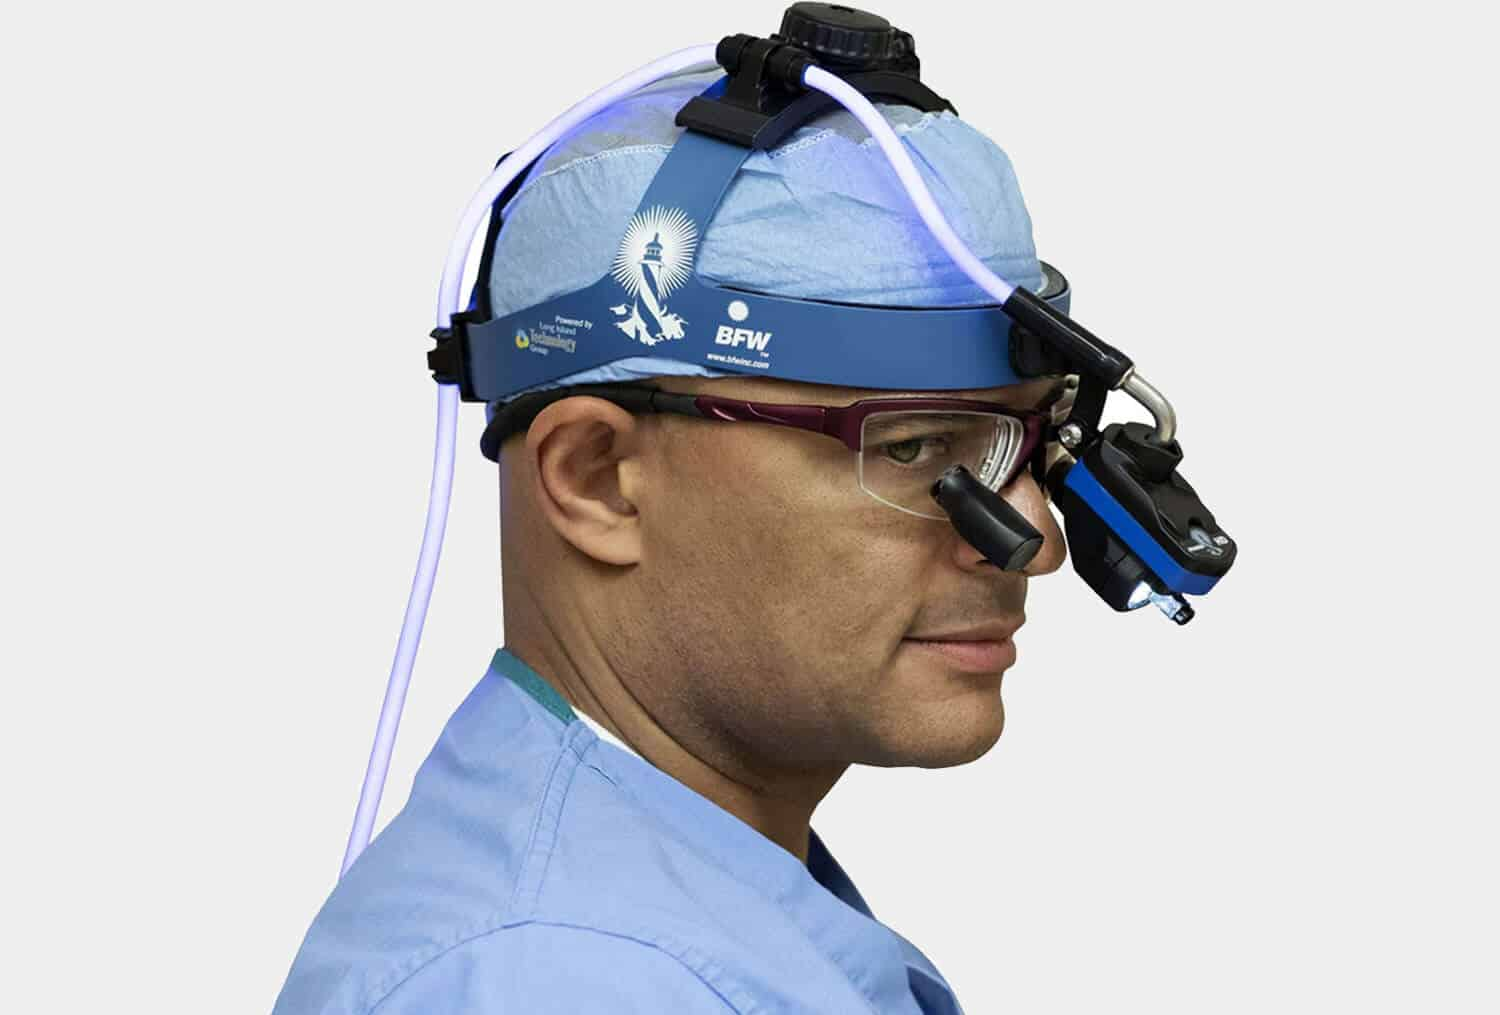 new surgical technology